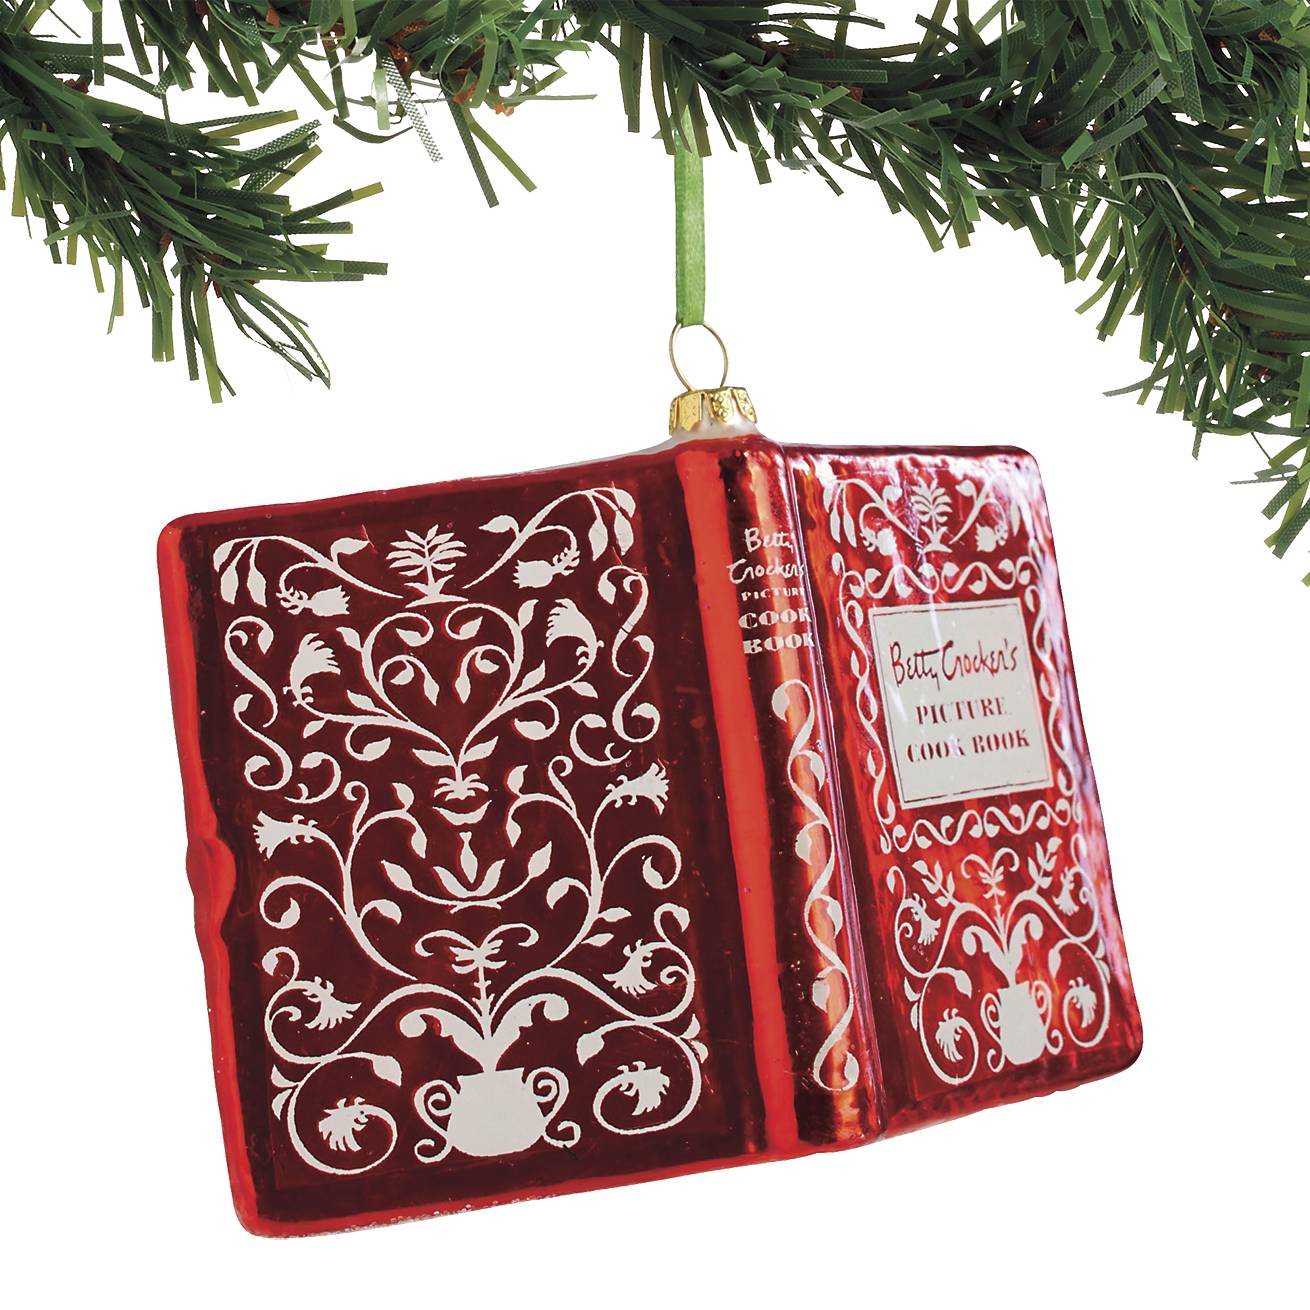 Betty Crocker Cookbook Ornament